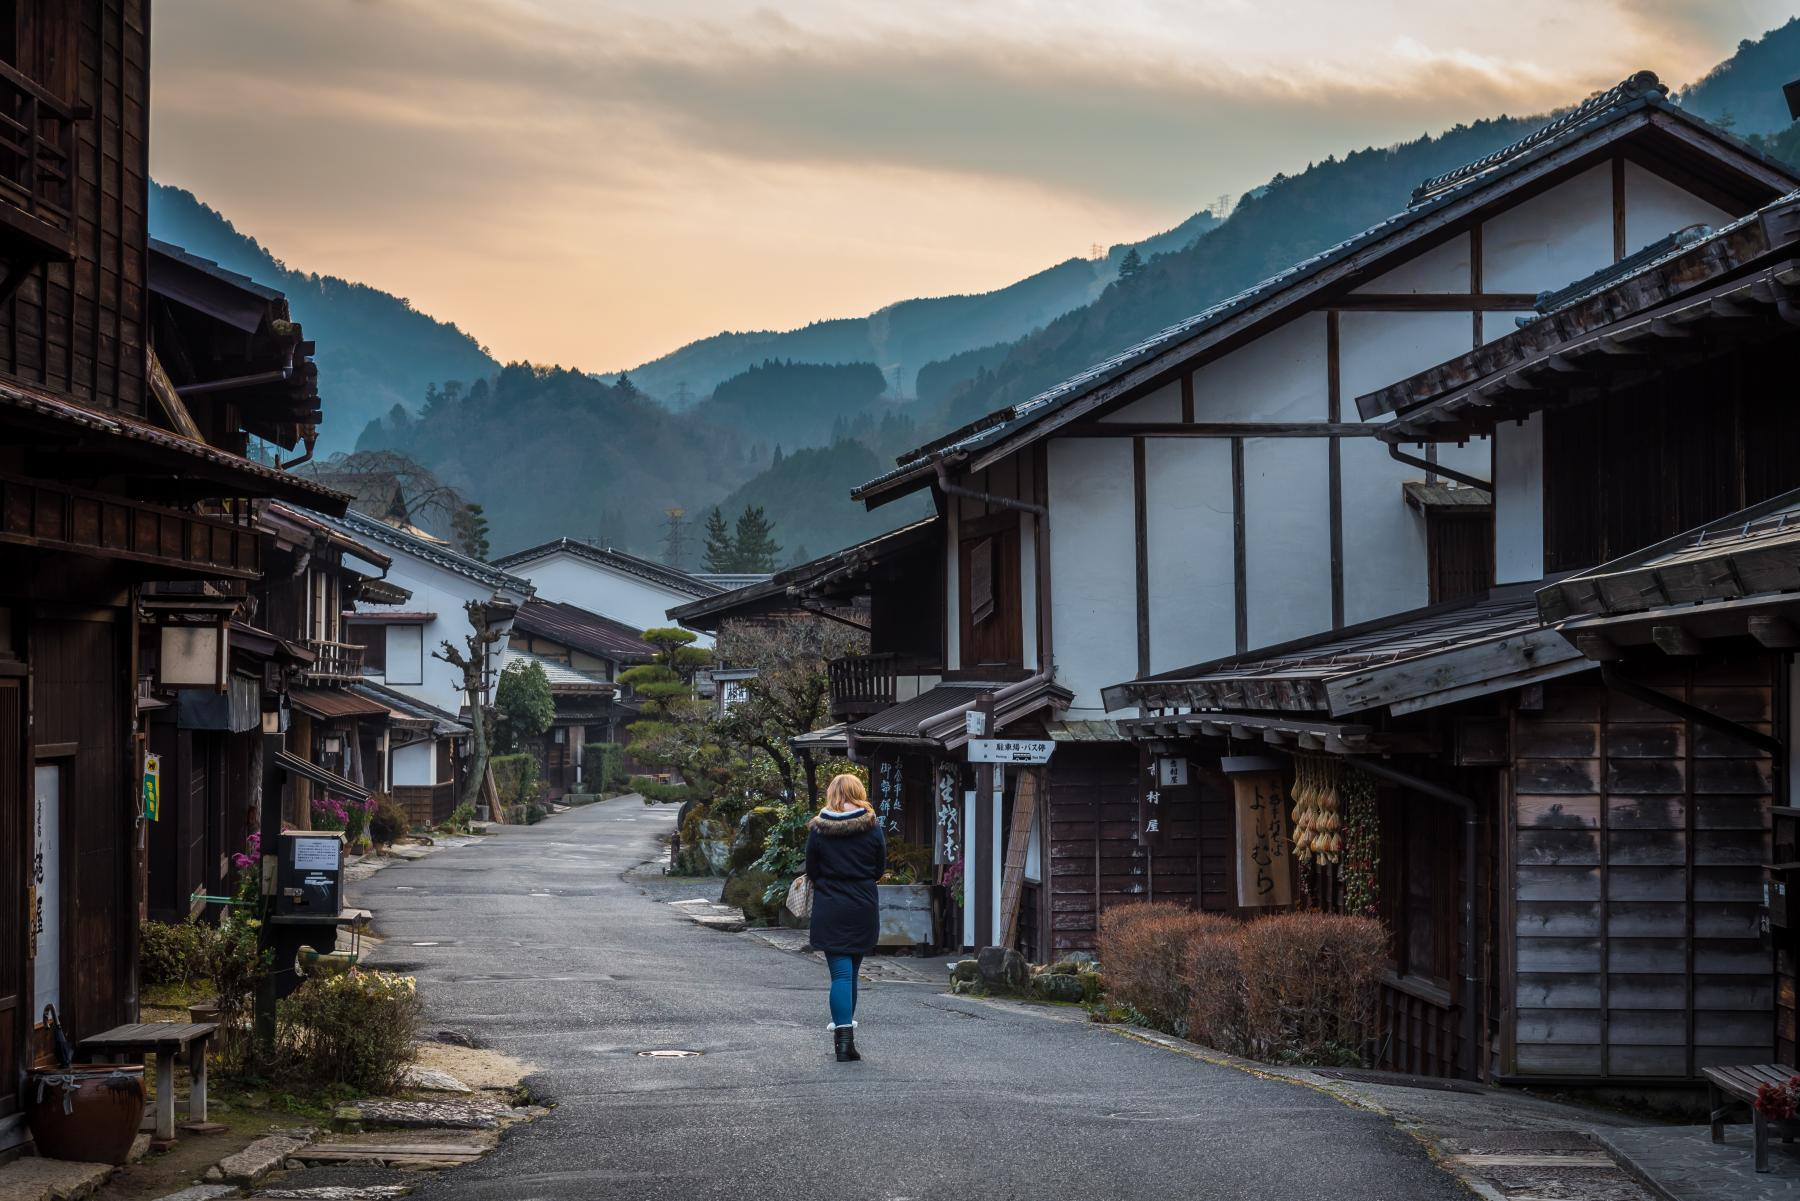 Follow the foot steps of the feudal lords of Japan - Nakasendo and Kiso Valley starting at Osaka Prefecture, Japan